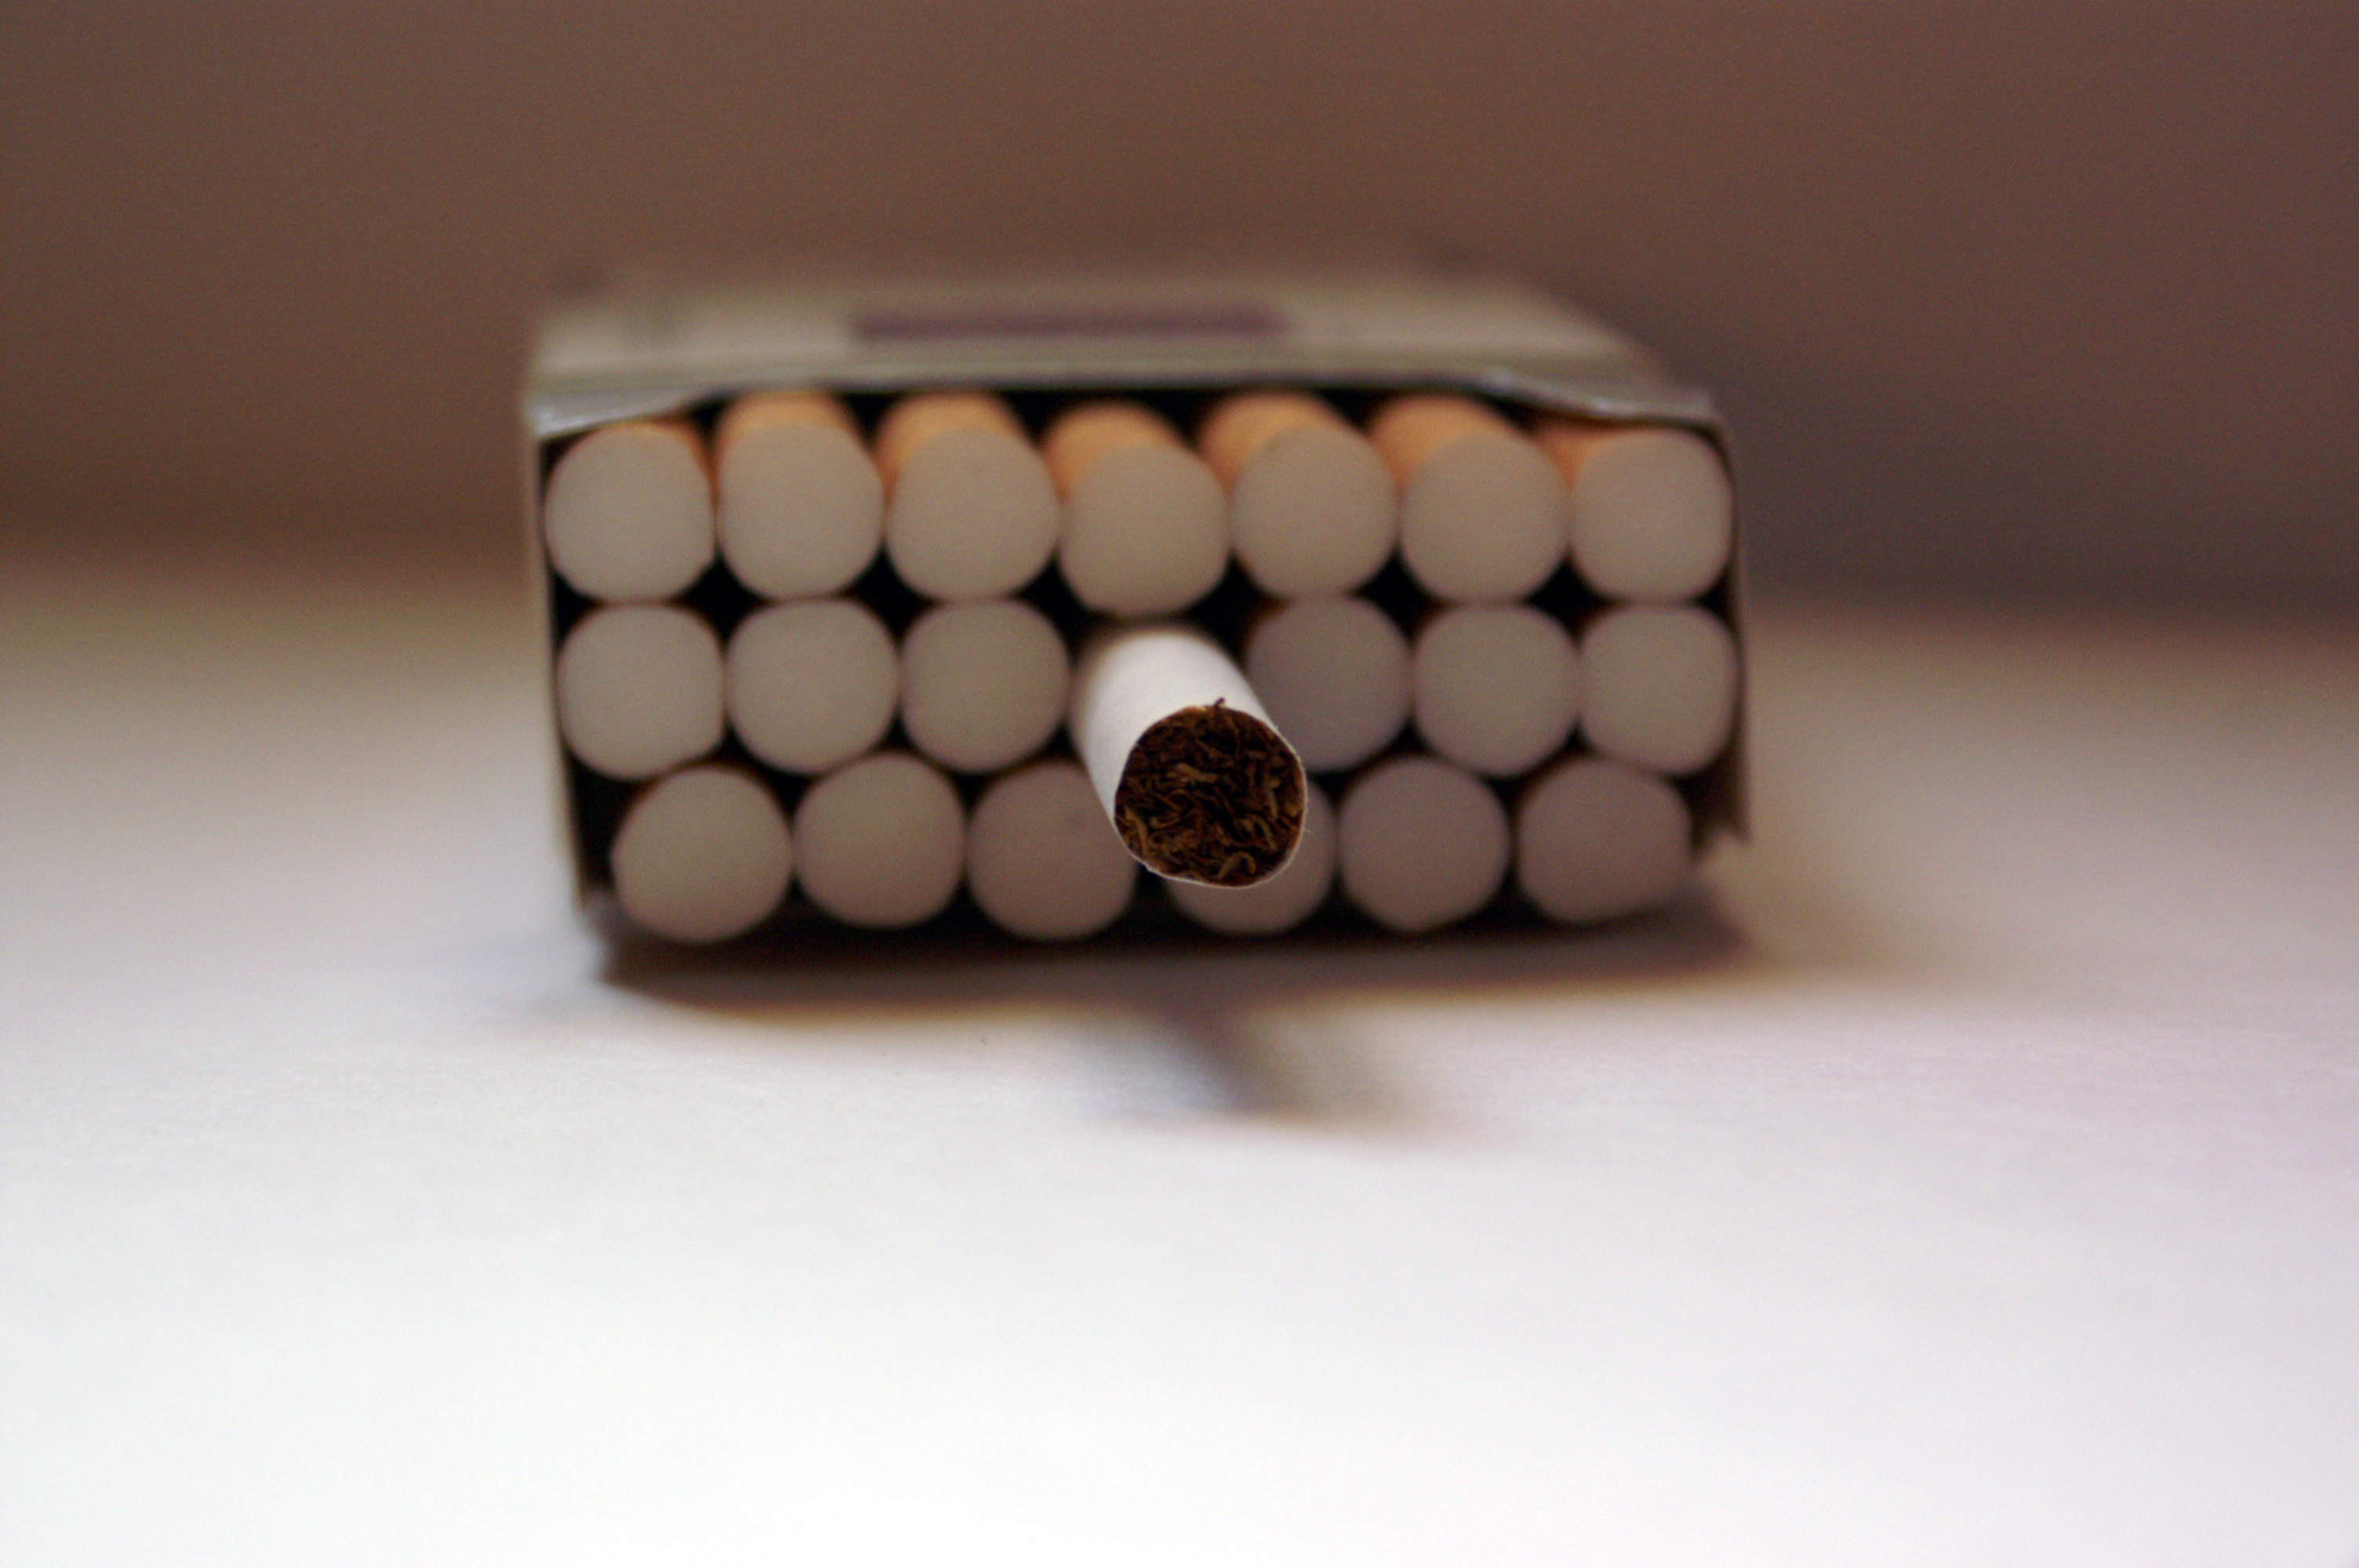 cigarettes, pack of cigarettes, smoking, emphysema, barrel chest